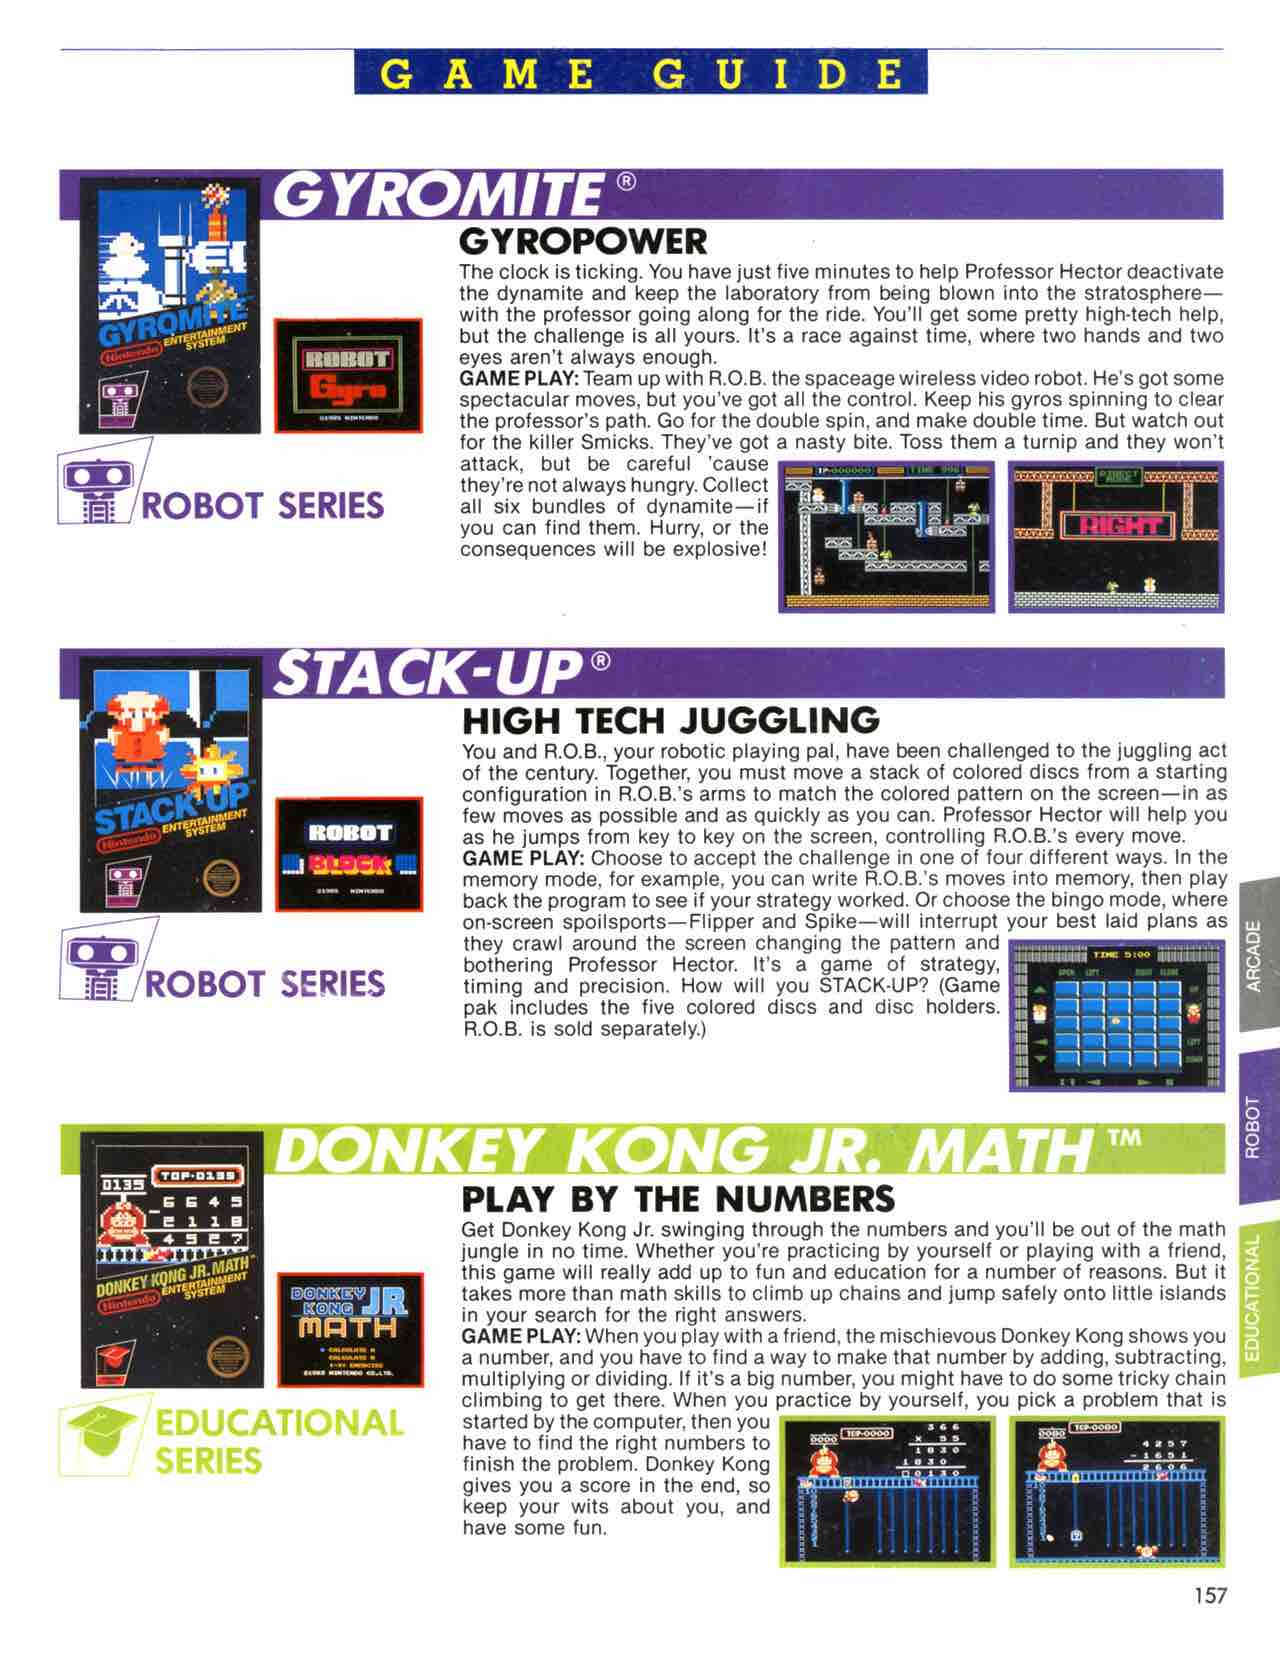 Official Nintendo Player's Guide Pg 157